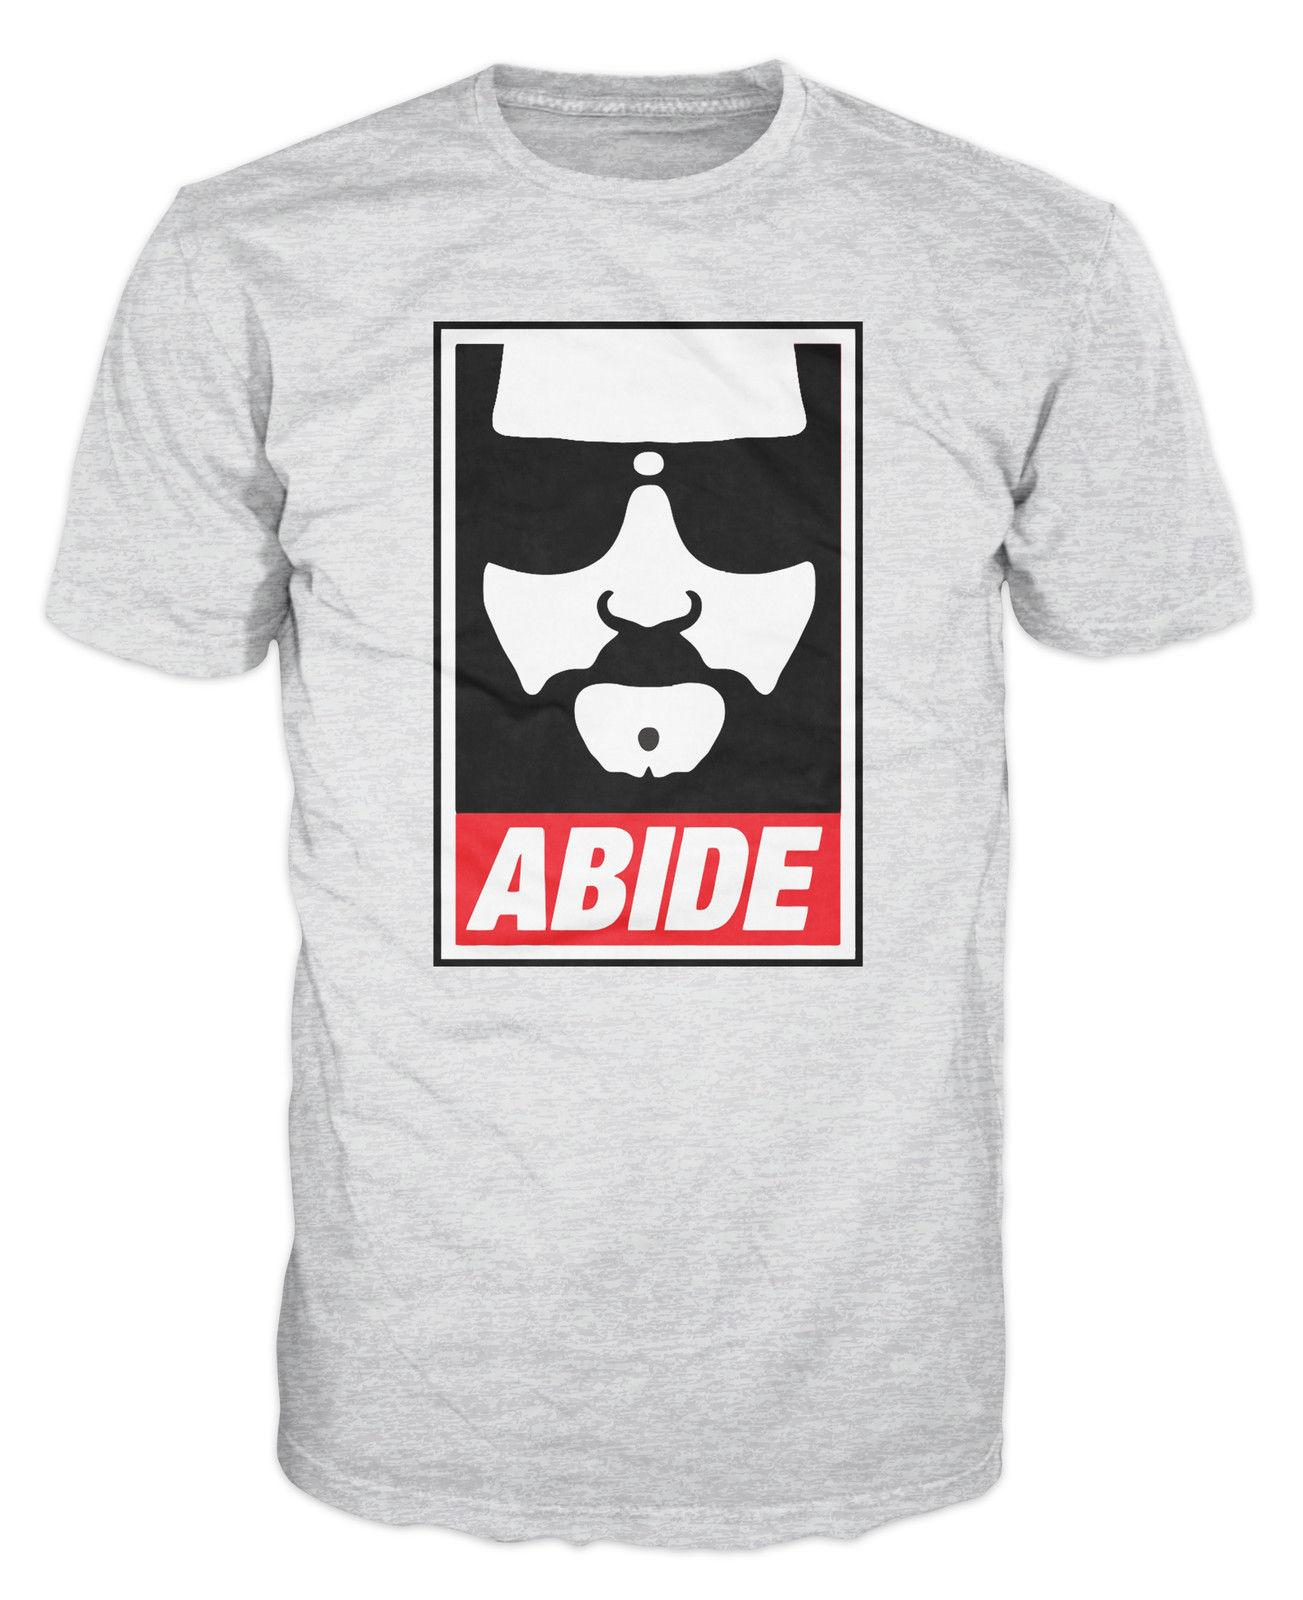 cec6ac35b0 Abide The Dude Film Hipster Bowling Funny T Shirt Shopping T Shirt Online  Cool T Shirt Sites From Beidhgate04, $11.17| DHgate.Com